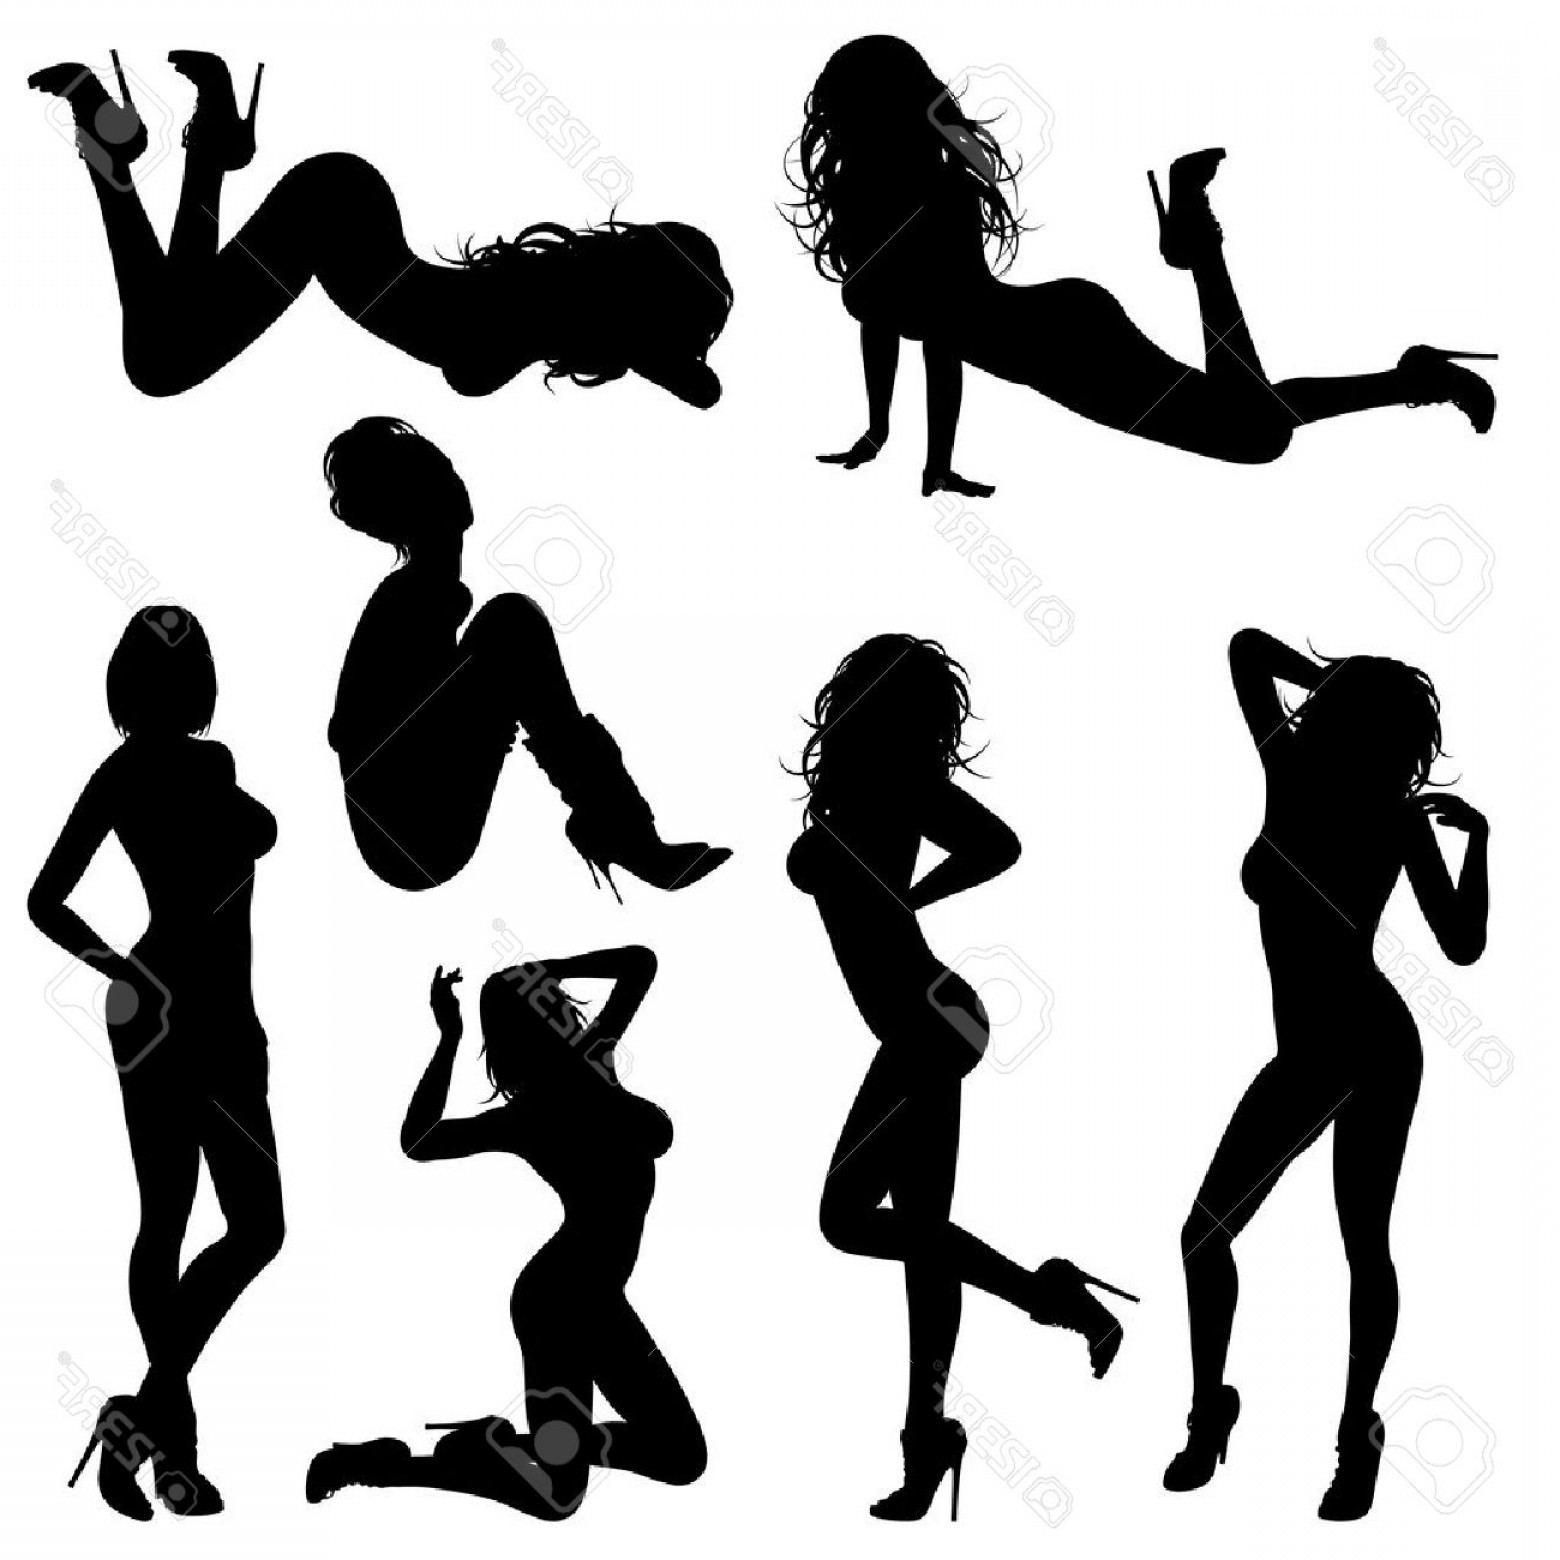 Sexy Silhouette Vector Art: Photosilhouettes Sexy Girl In Various Poses Isolated On White Background